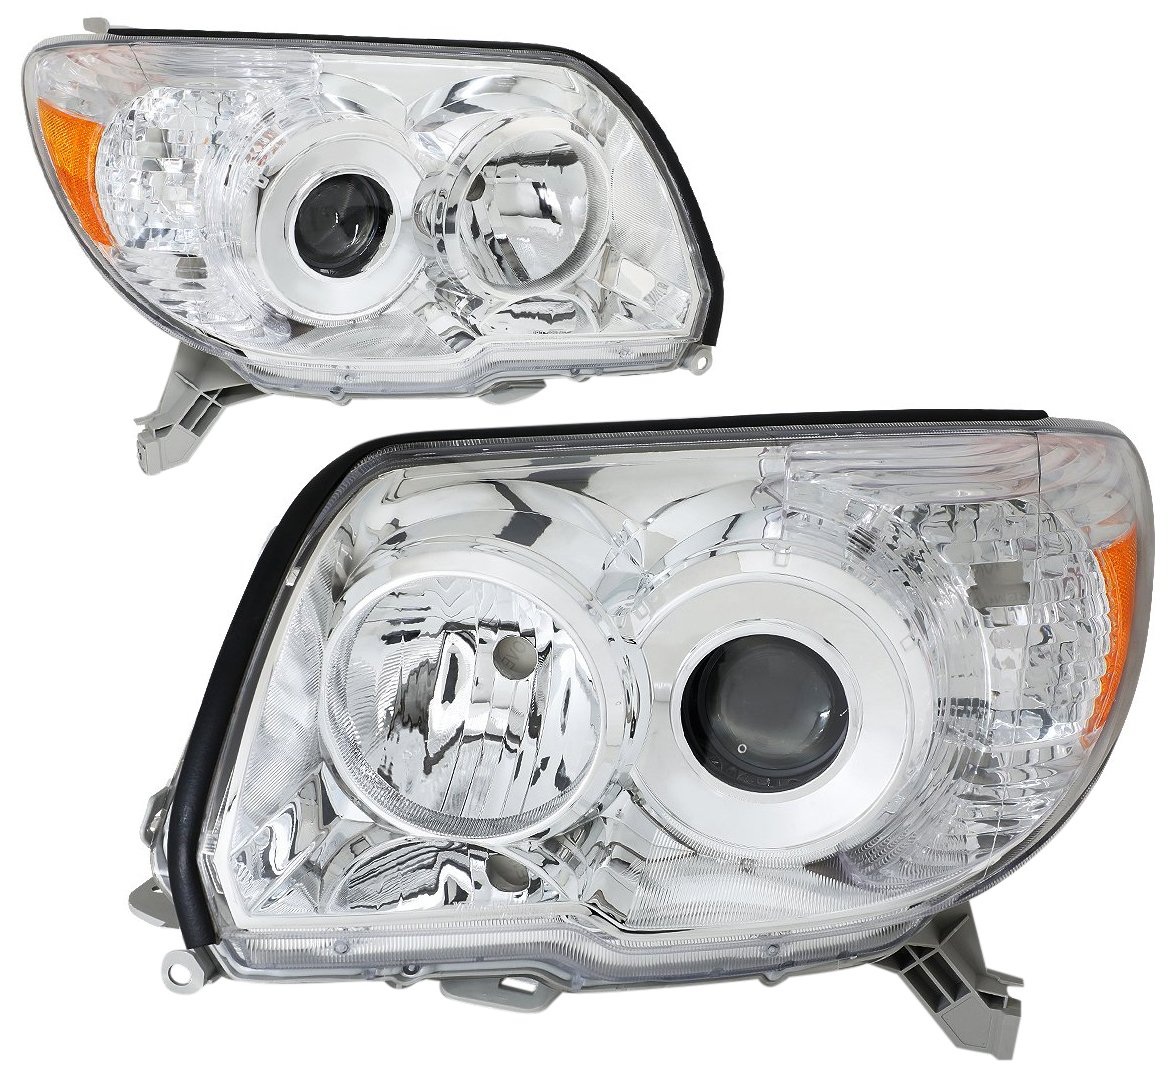 DNA MOTORING HL-OH-086-CH-AM Headlight Assembly, Driver and Passenger Side